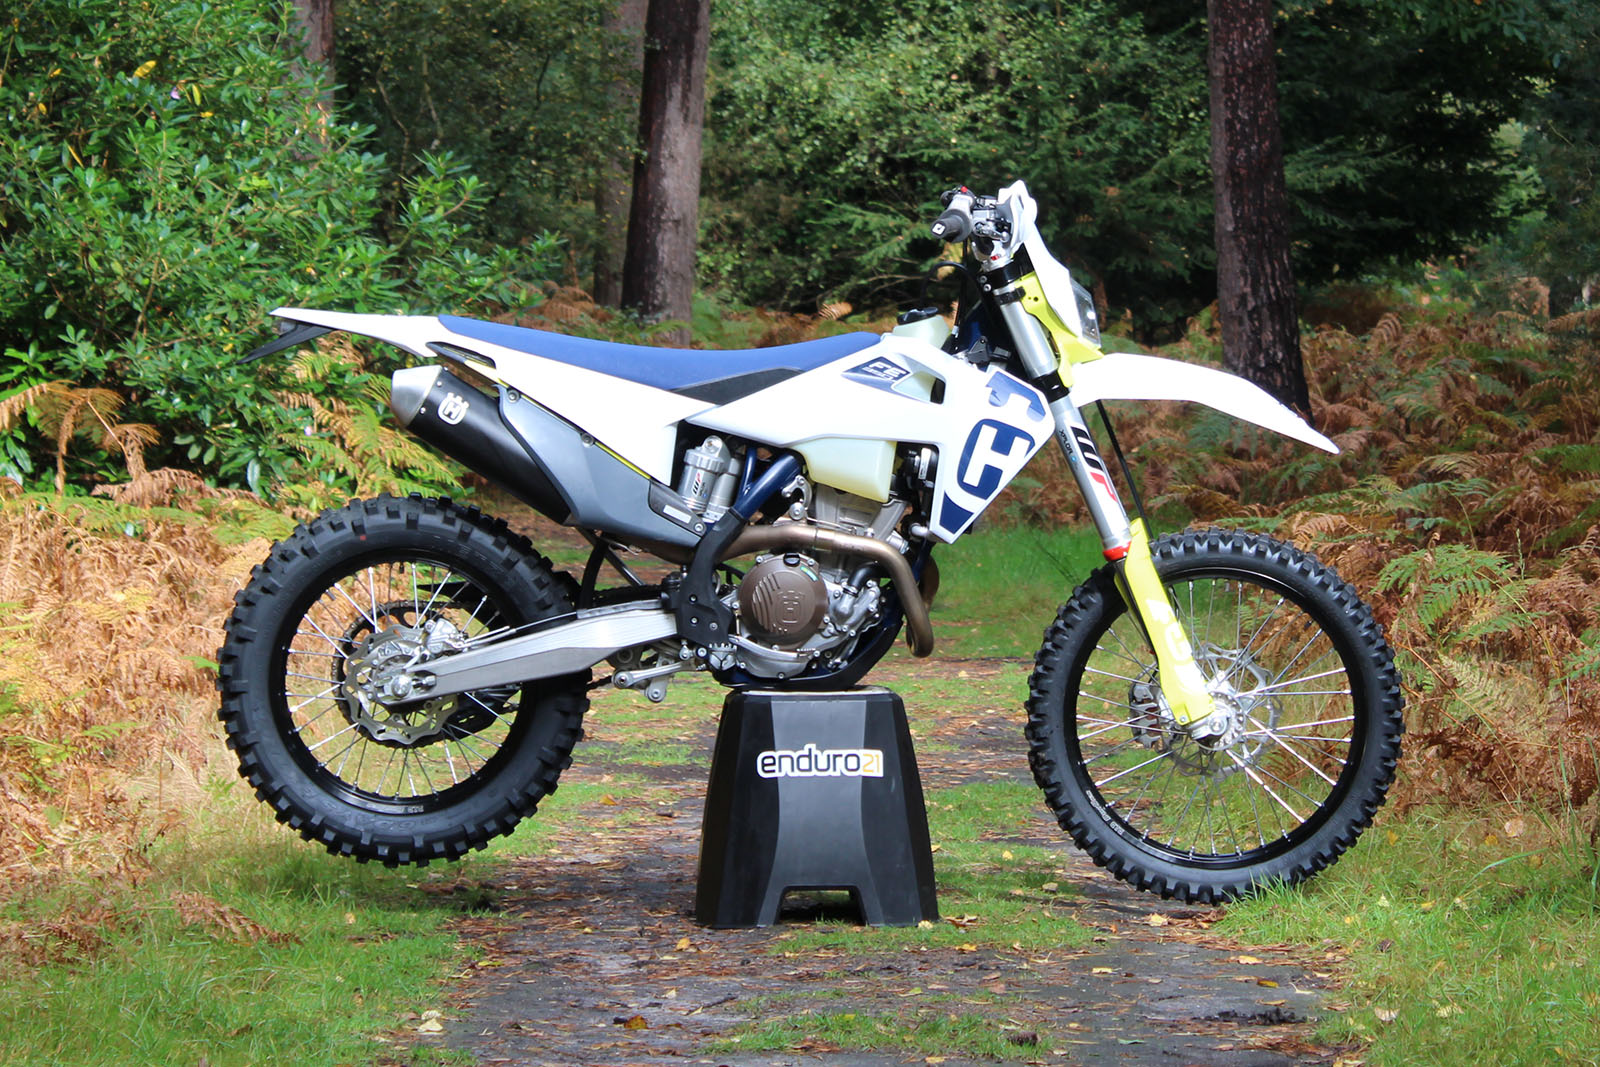 2020 Husqvarna FE 350: The new Enduro21 test mule